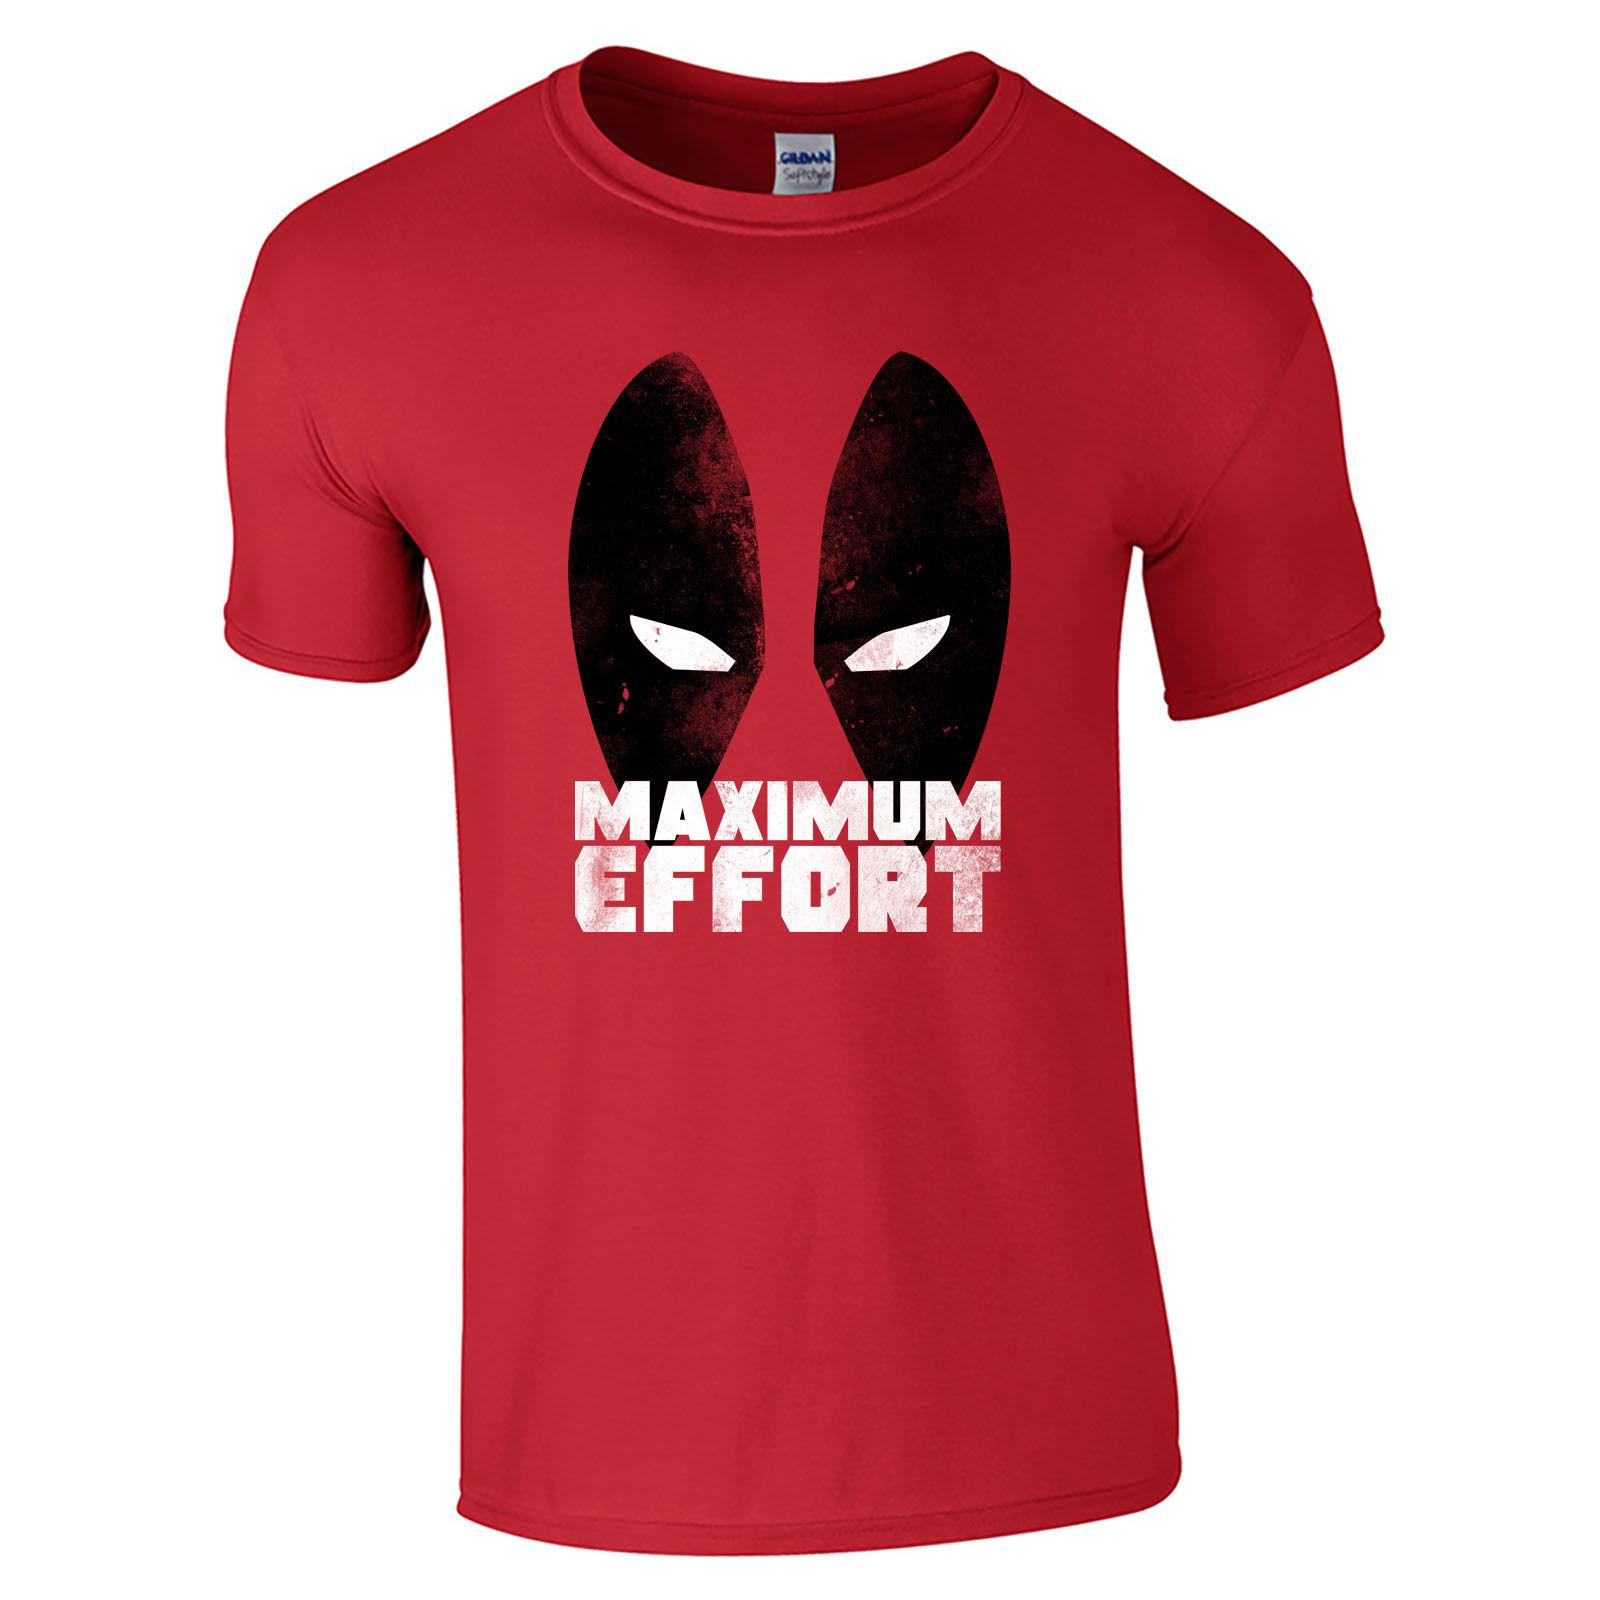 8d9eb028b Deadpool Maximum Effort T Shirt Comic Eyes Superhero Funny Movie Mens Gift  Top T Sirt T Shirt Sites From Uniquedesigntee, $11.01| DHgate.Com